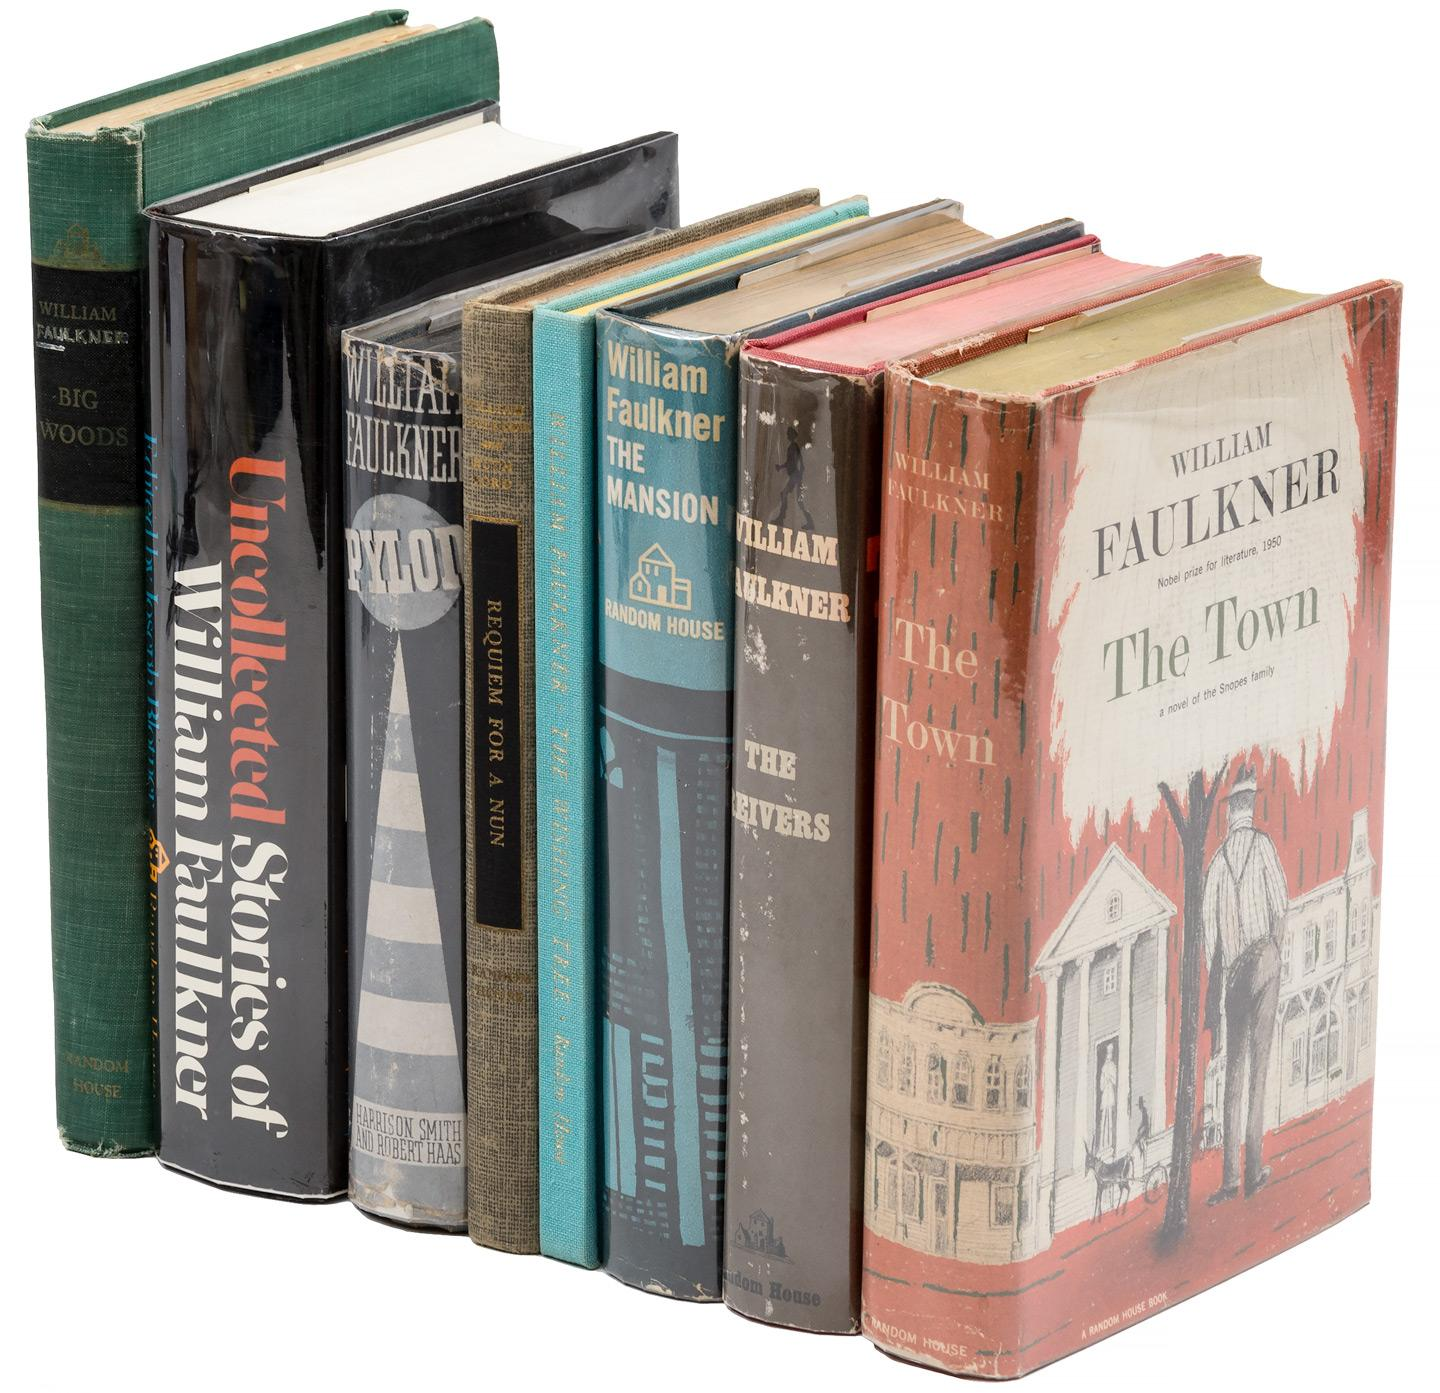 lot: 11 WILLIAM FAULKNER paperback books